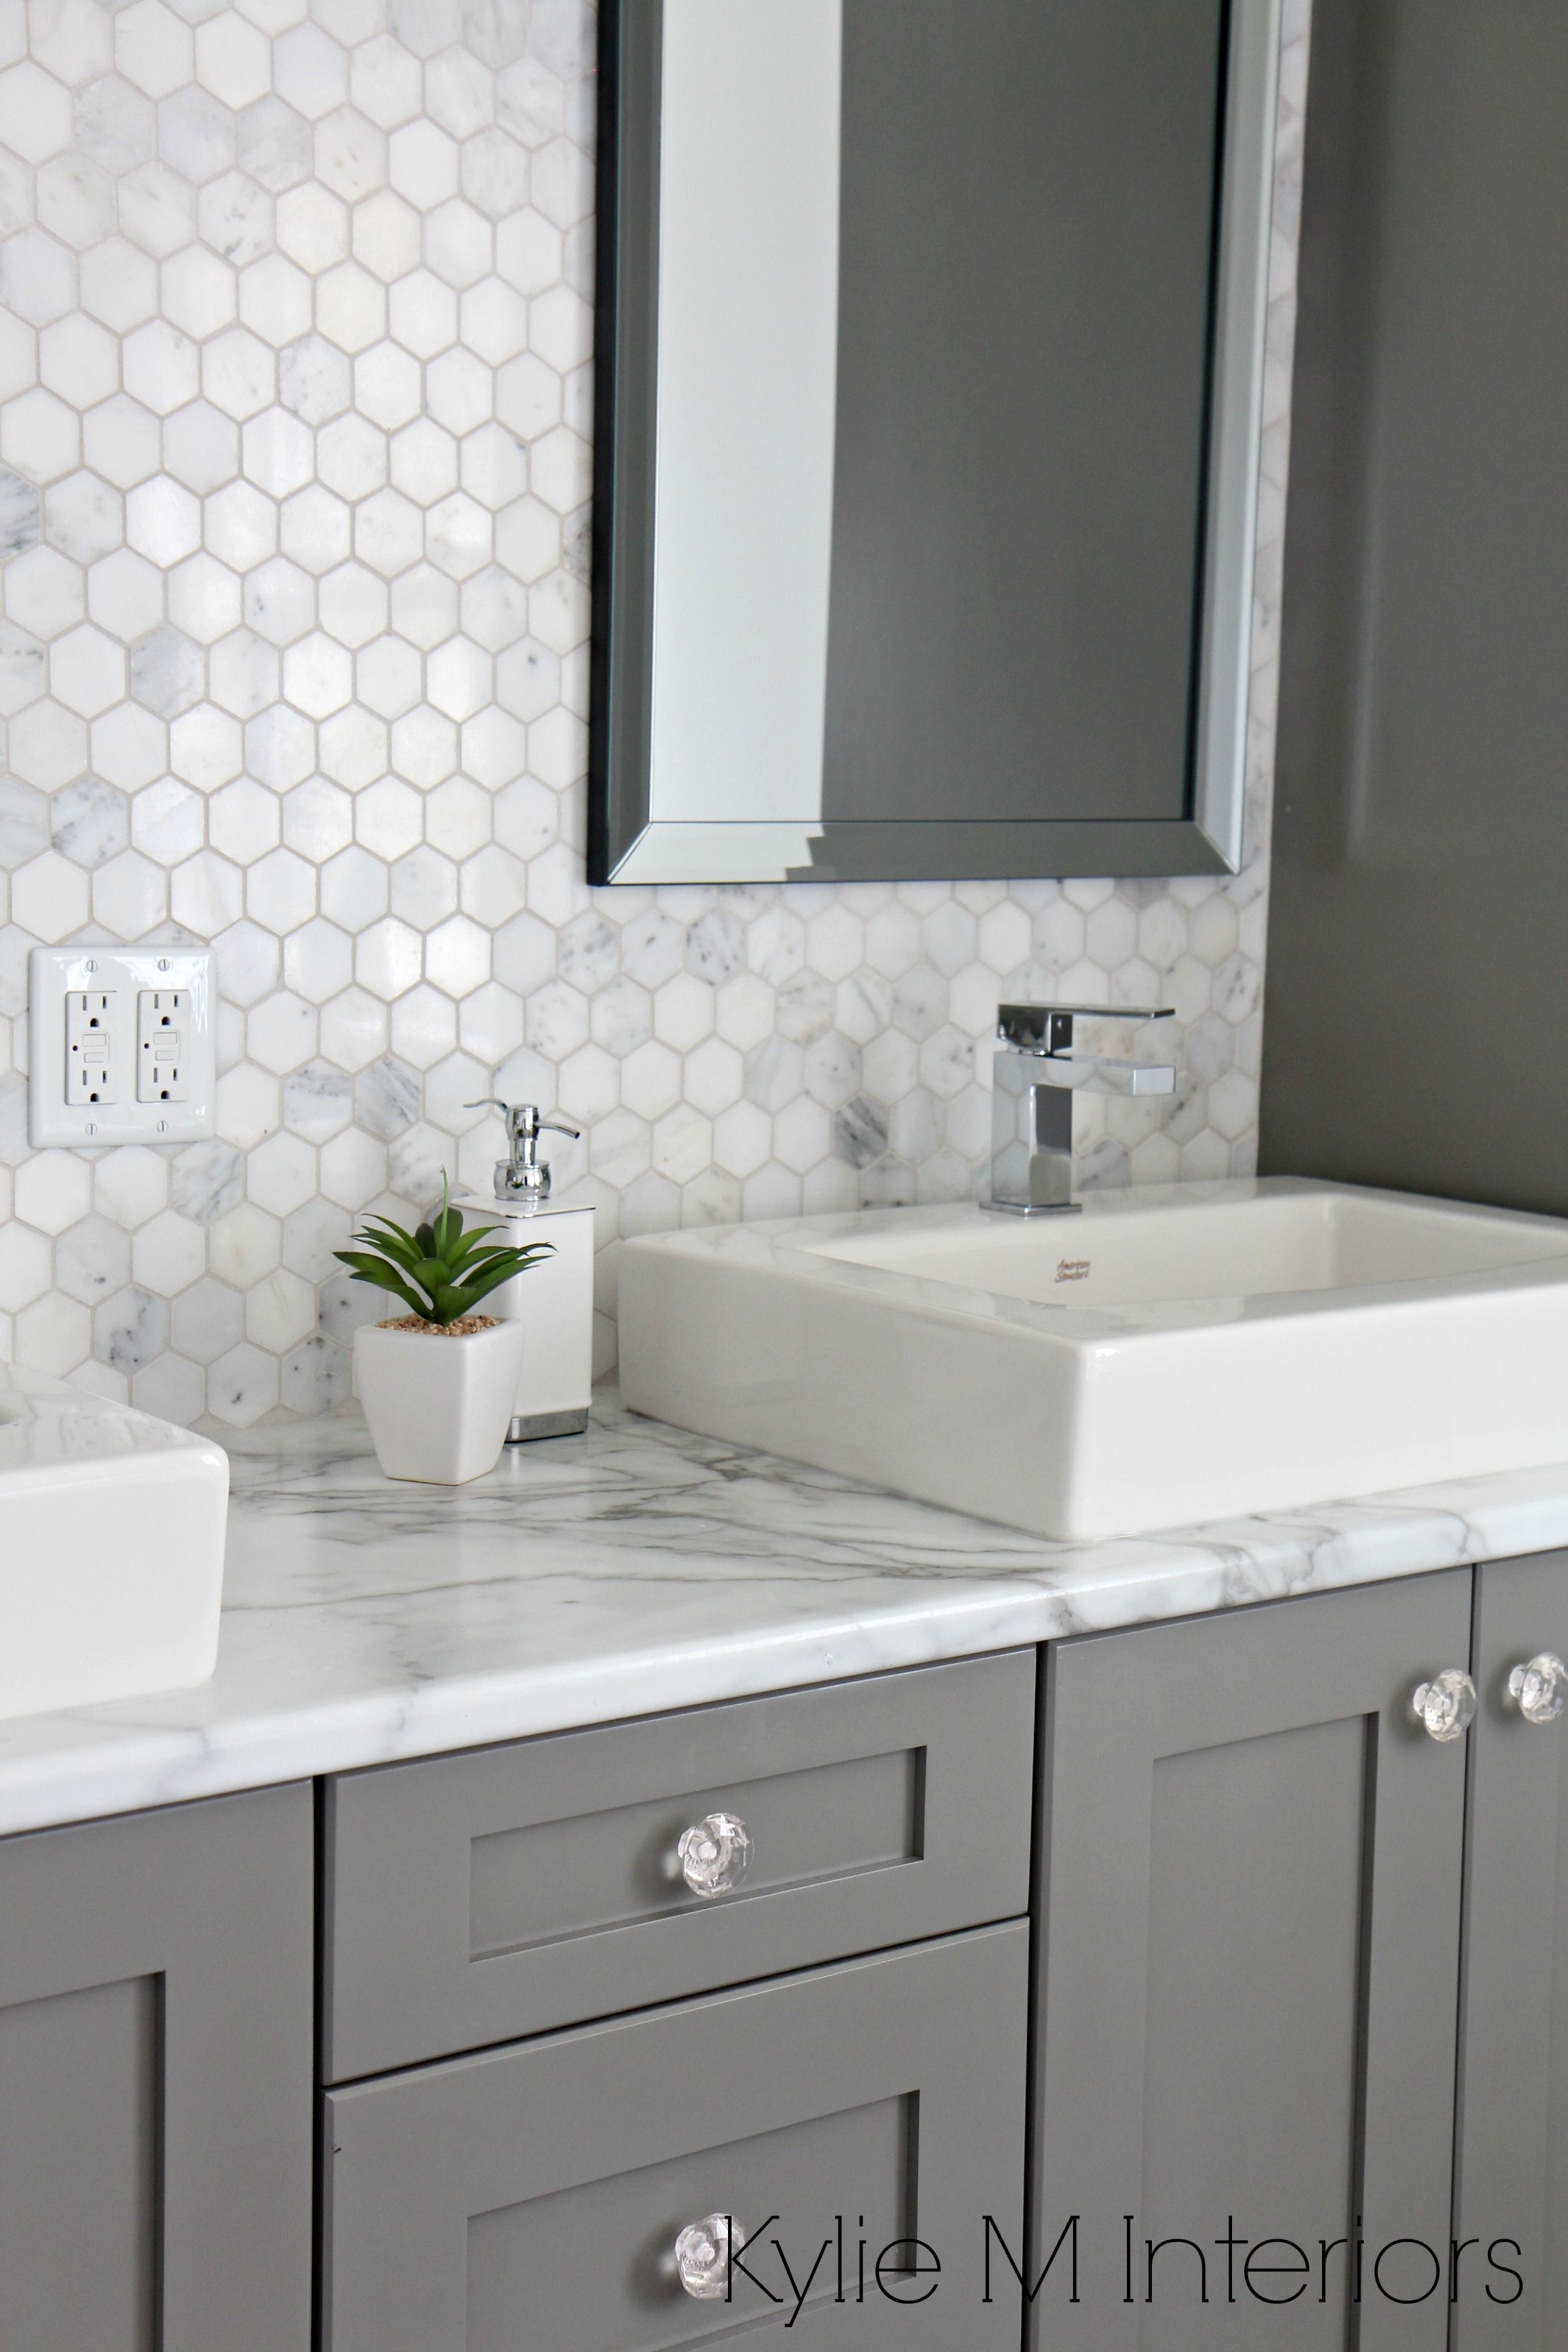 white hex floor tile color - Google Search | cool bathroom pics ...